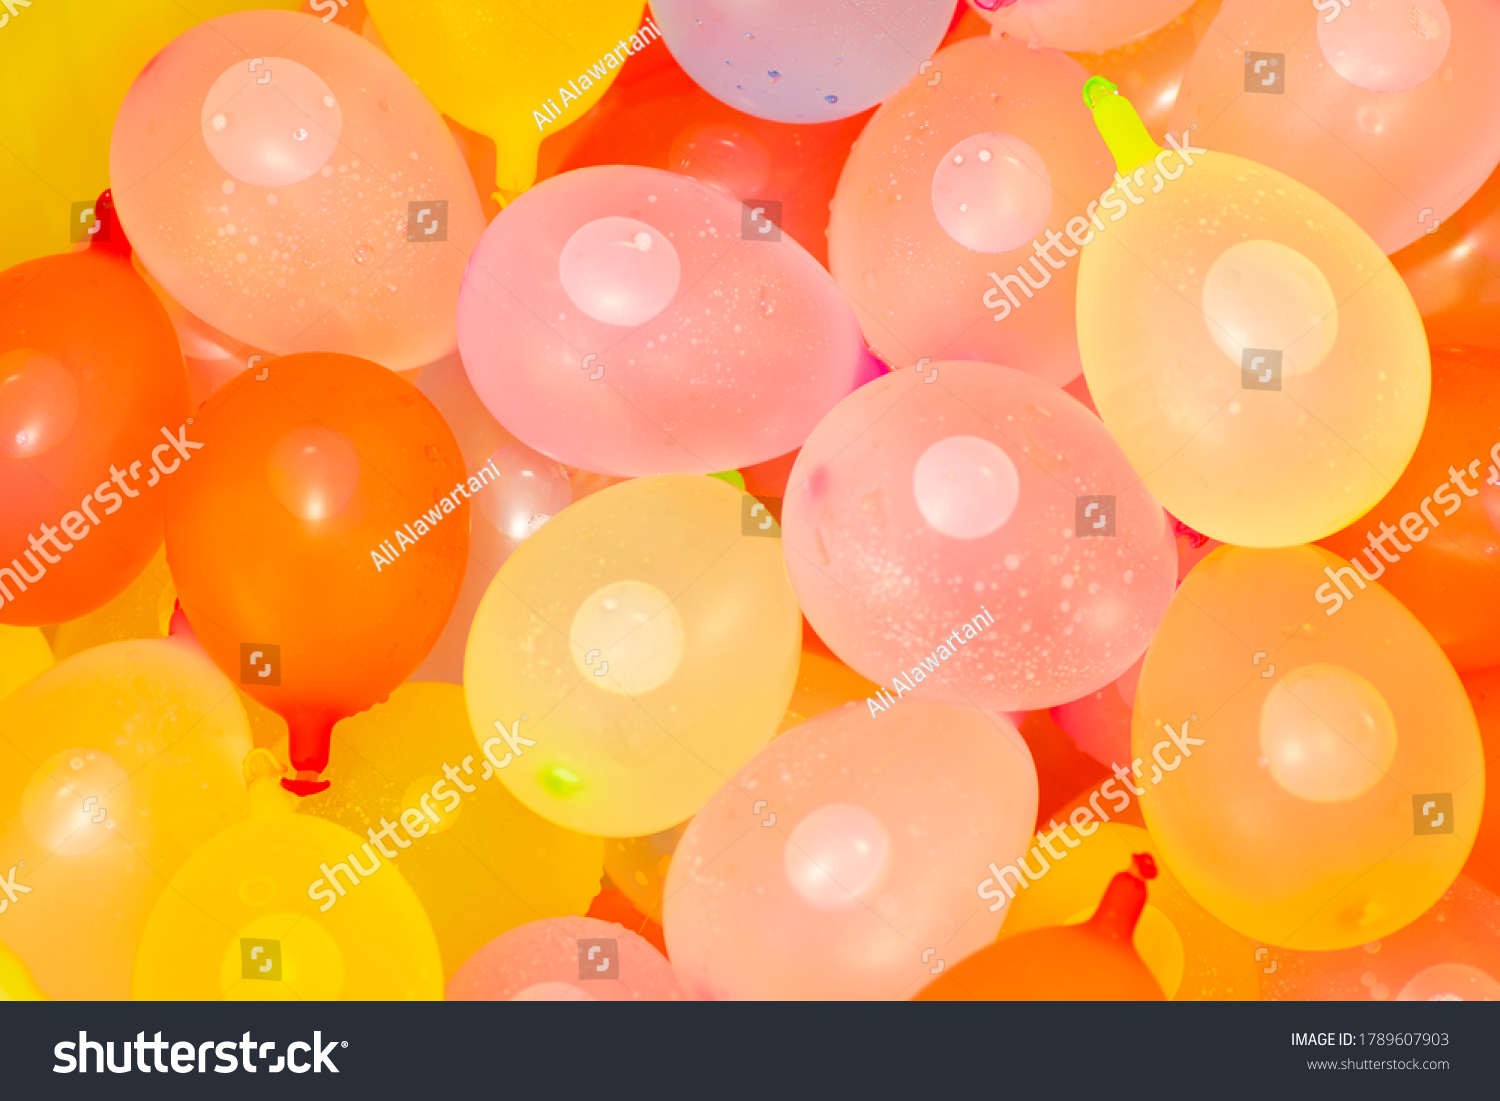 stock-photo-colorful-balloons-filled-wit